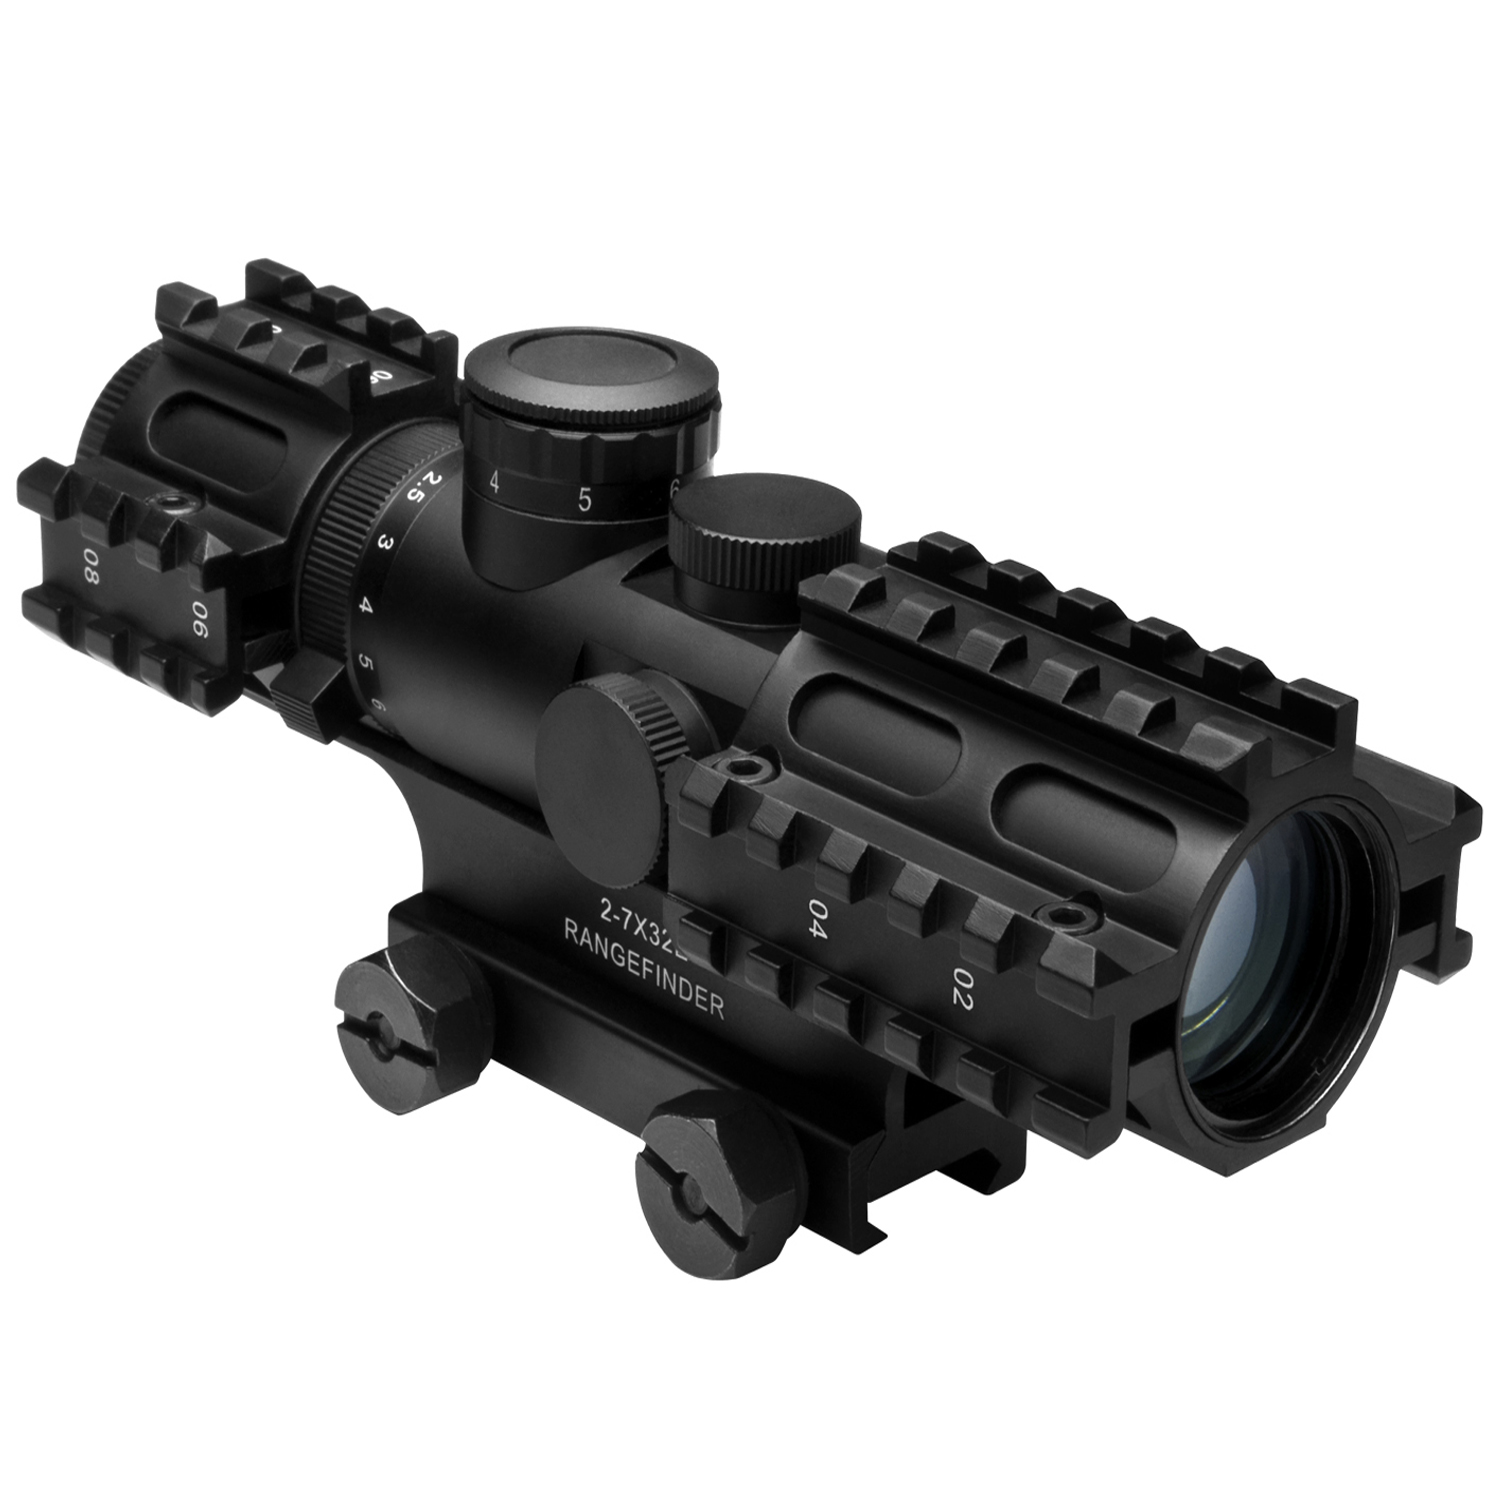 Ncstar Tri Rail Series Rangefinder Rifle Scope